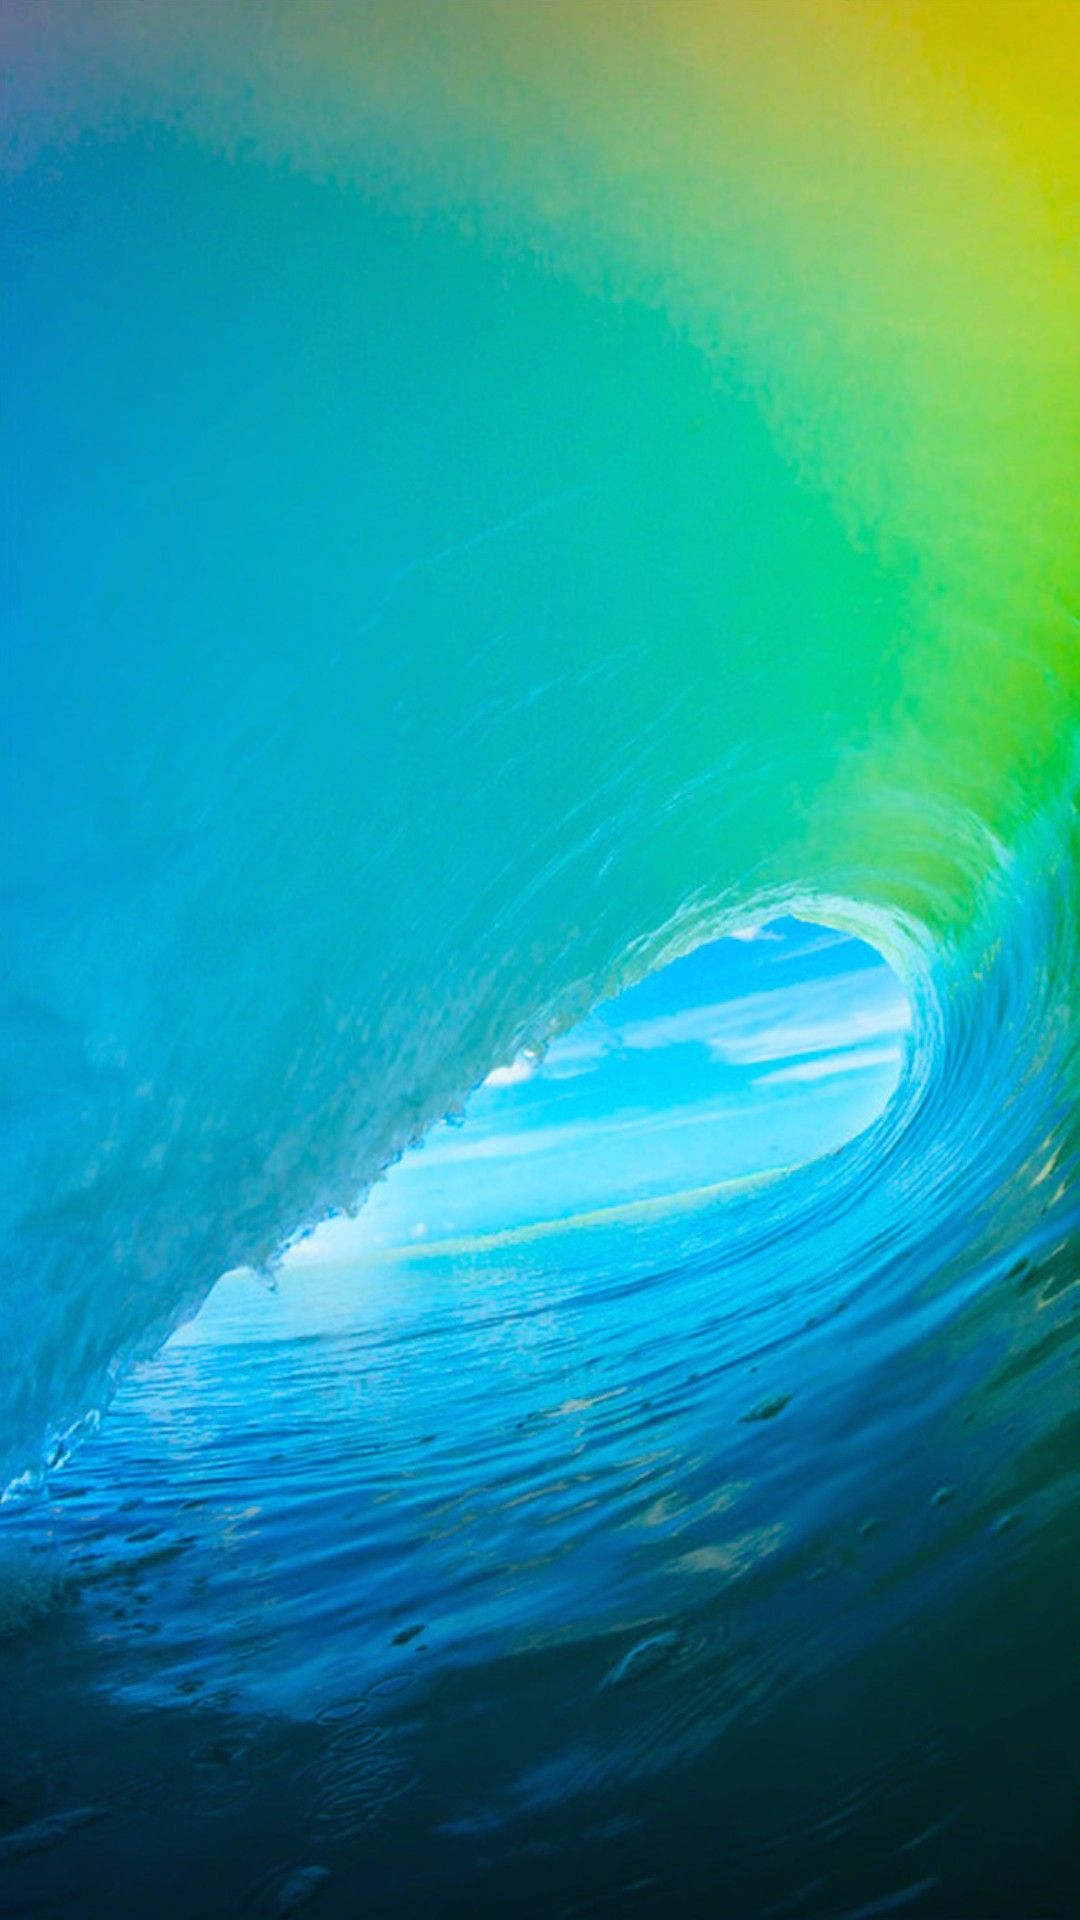 Ios 9 colorful surf wave iphone 6 hd wallpaper iphone - Hd supreme iphone wallpaper ...